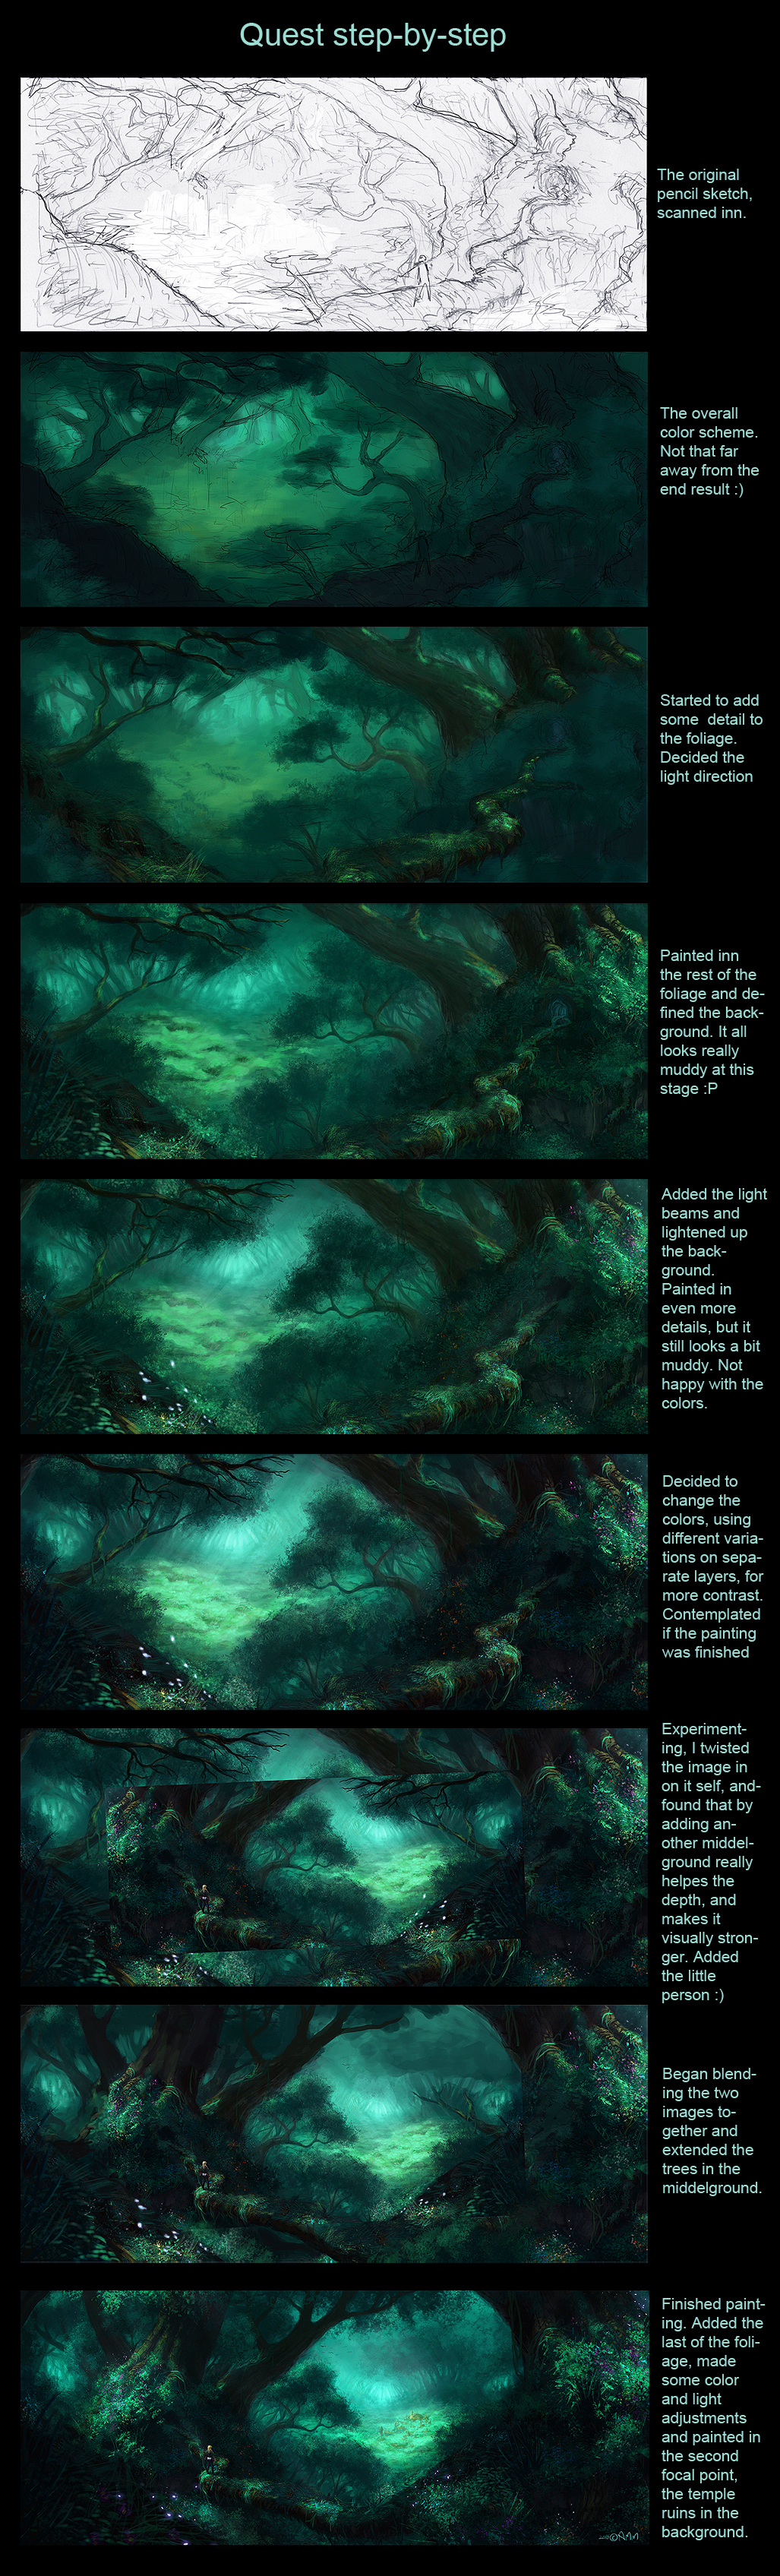 Quest step by step by am markussen on deviantart for Step by step painting tutorial